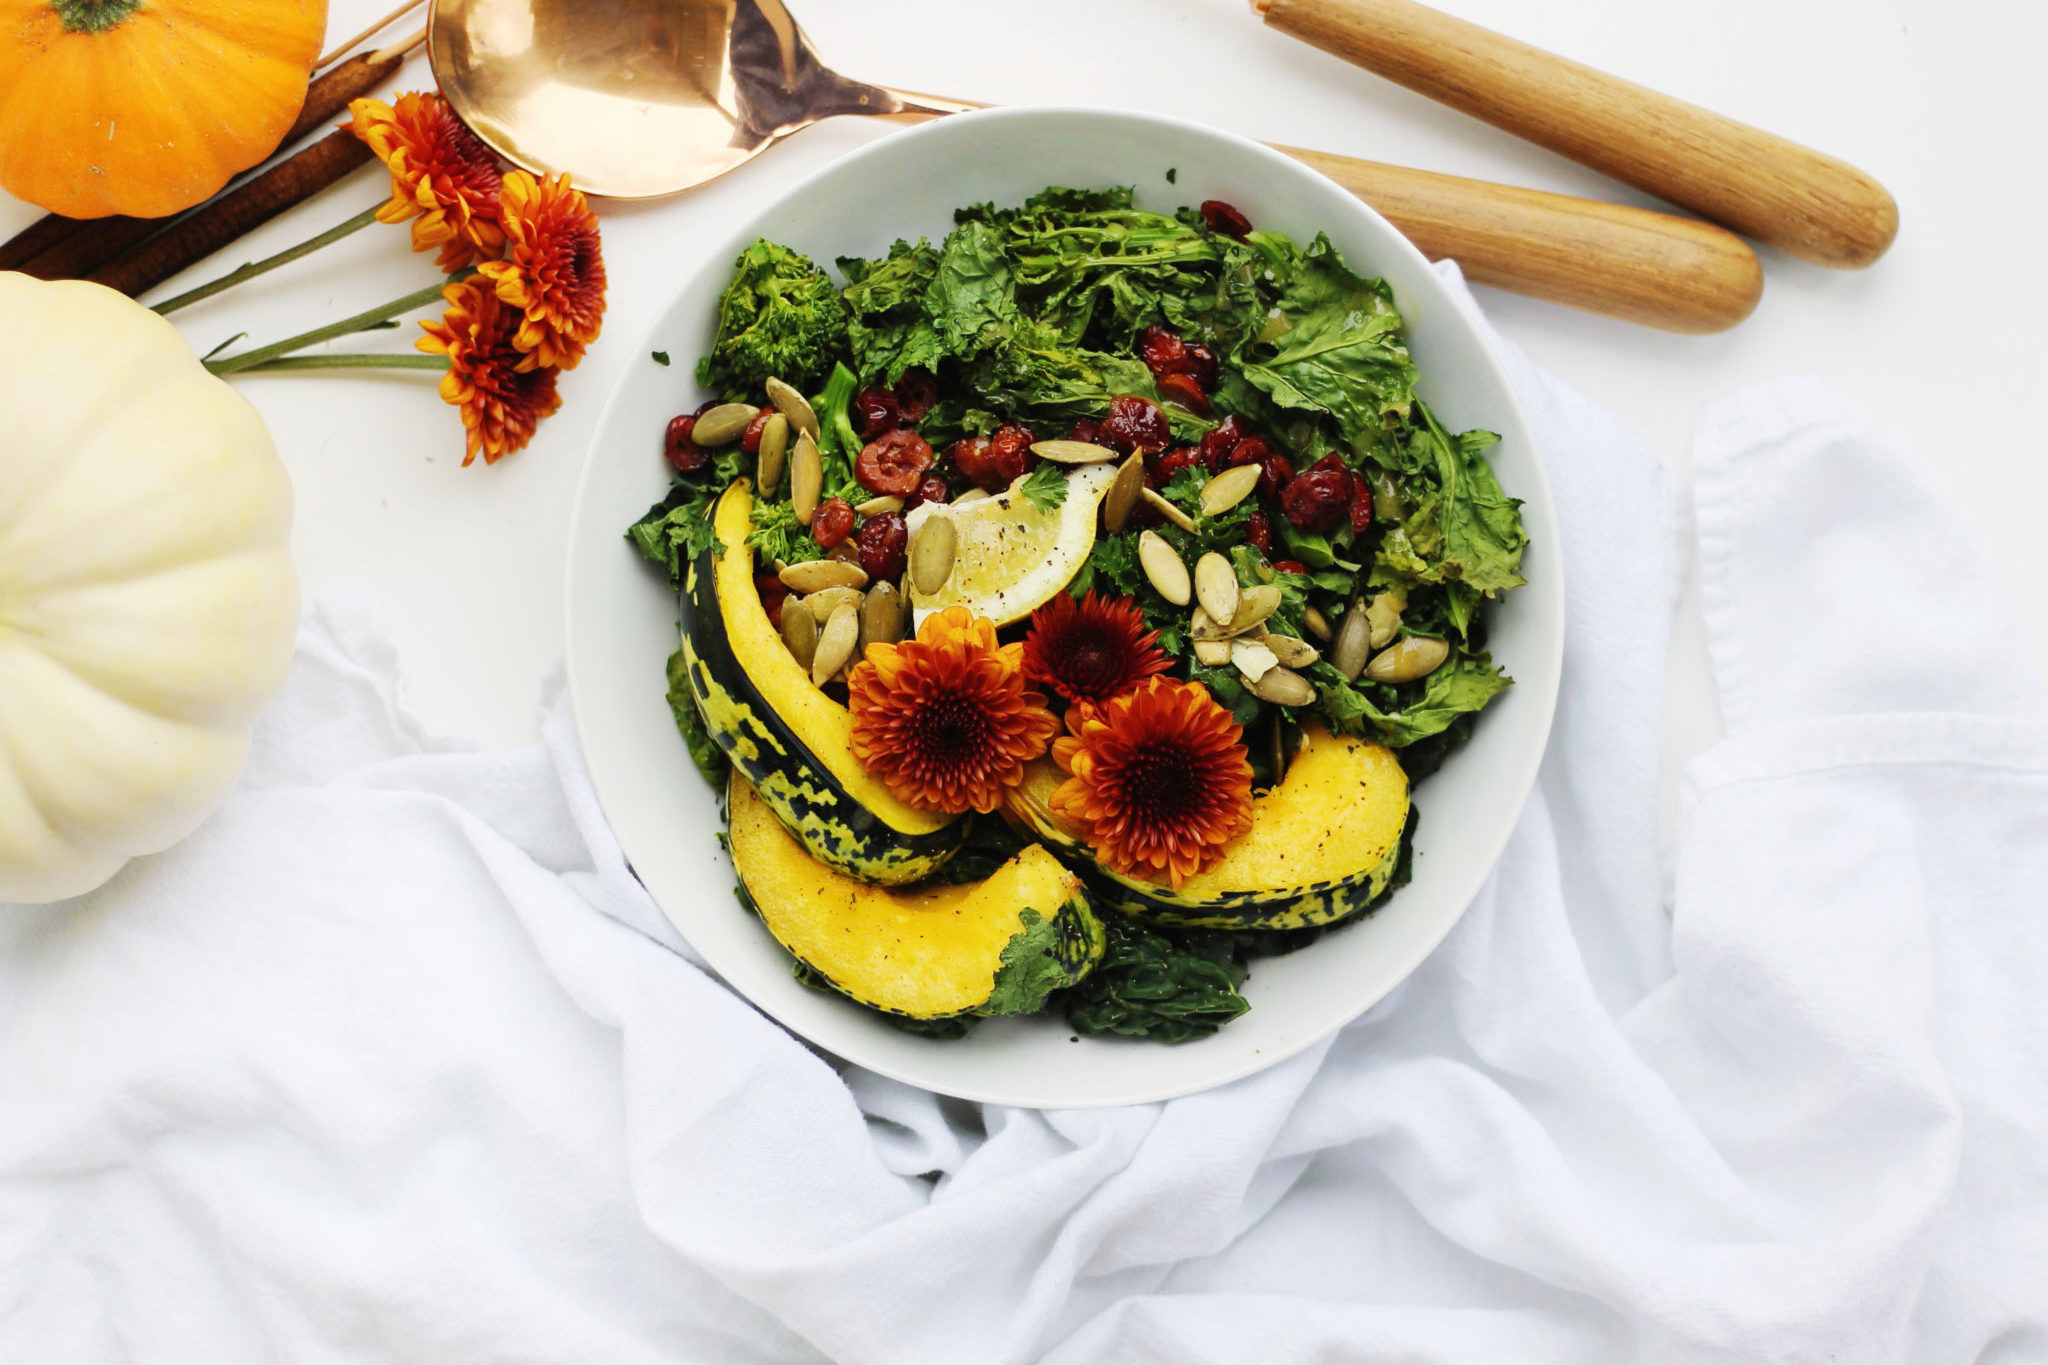 Roasted Squash Salad with Broccoli Rabe and Kale